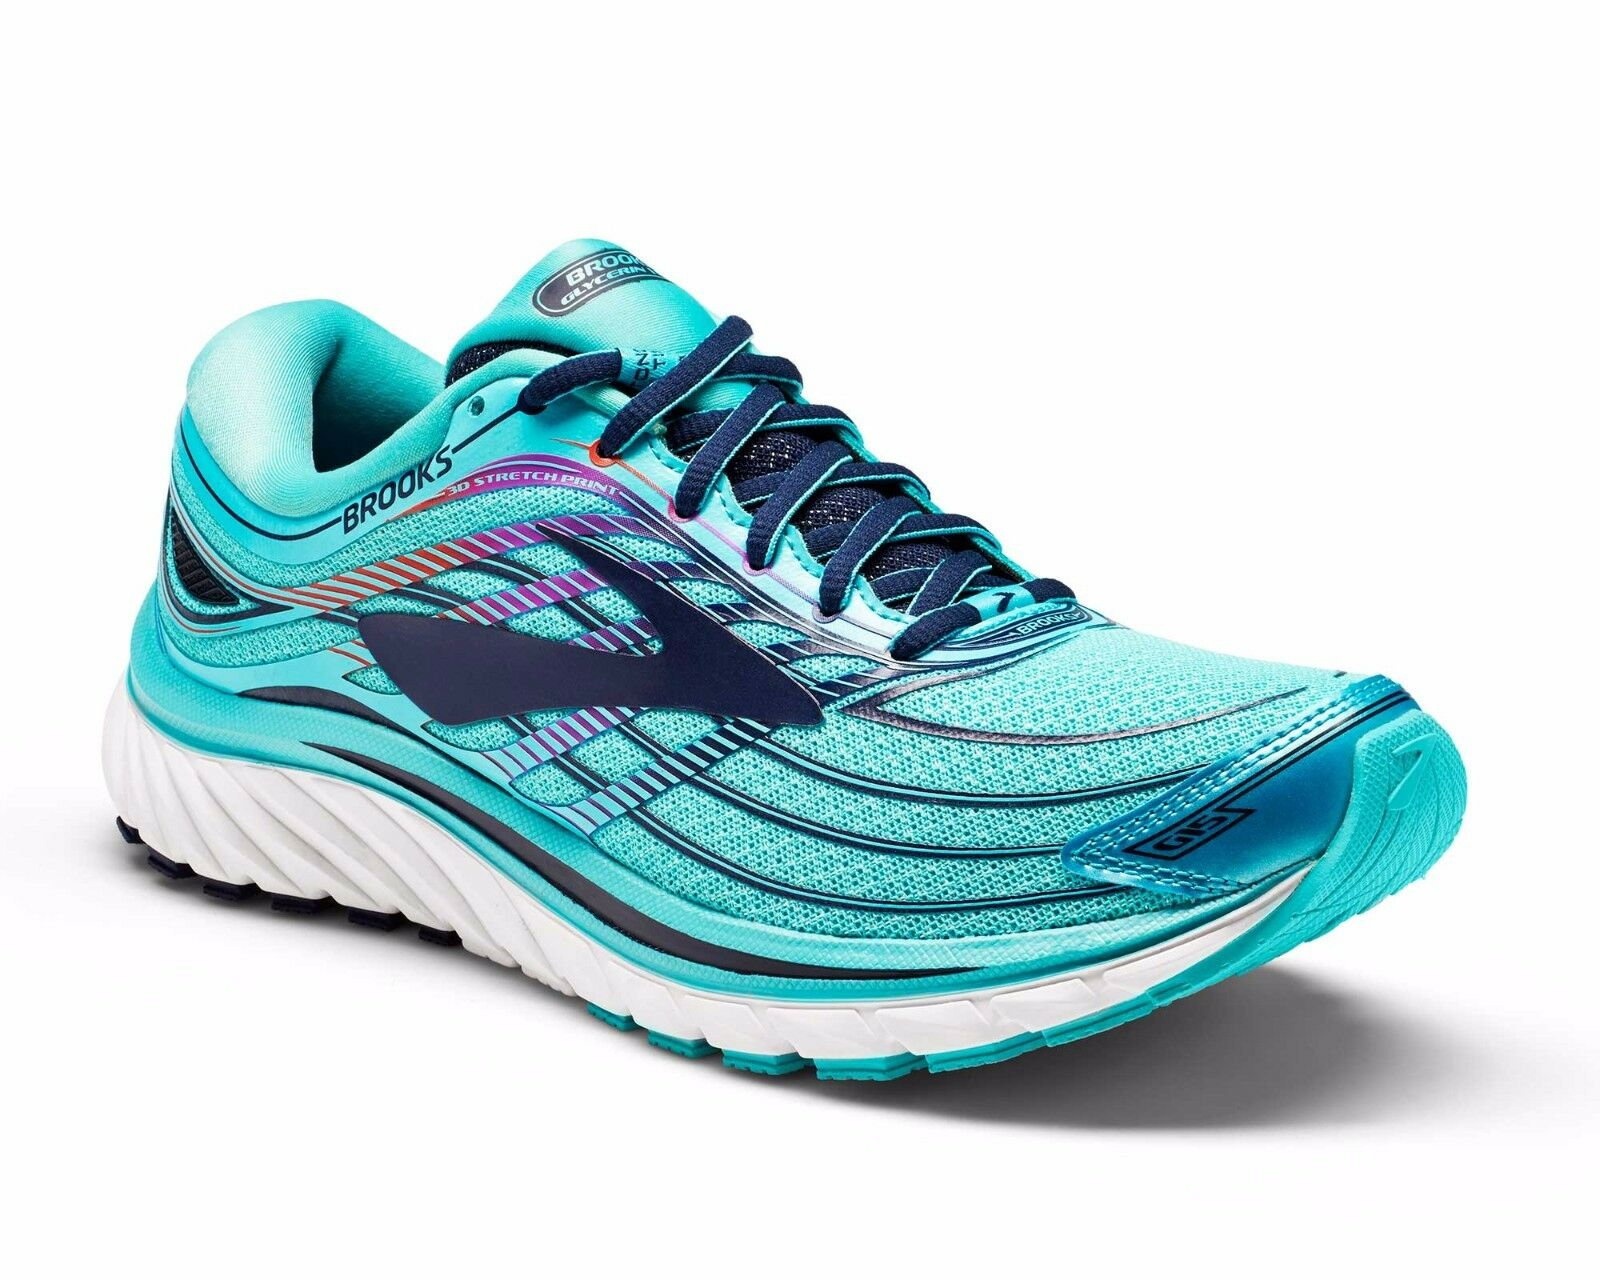 Brooks Glycerin 15 Femme Running Chaussures (B) (476)   Free AUS Delivery